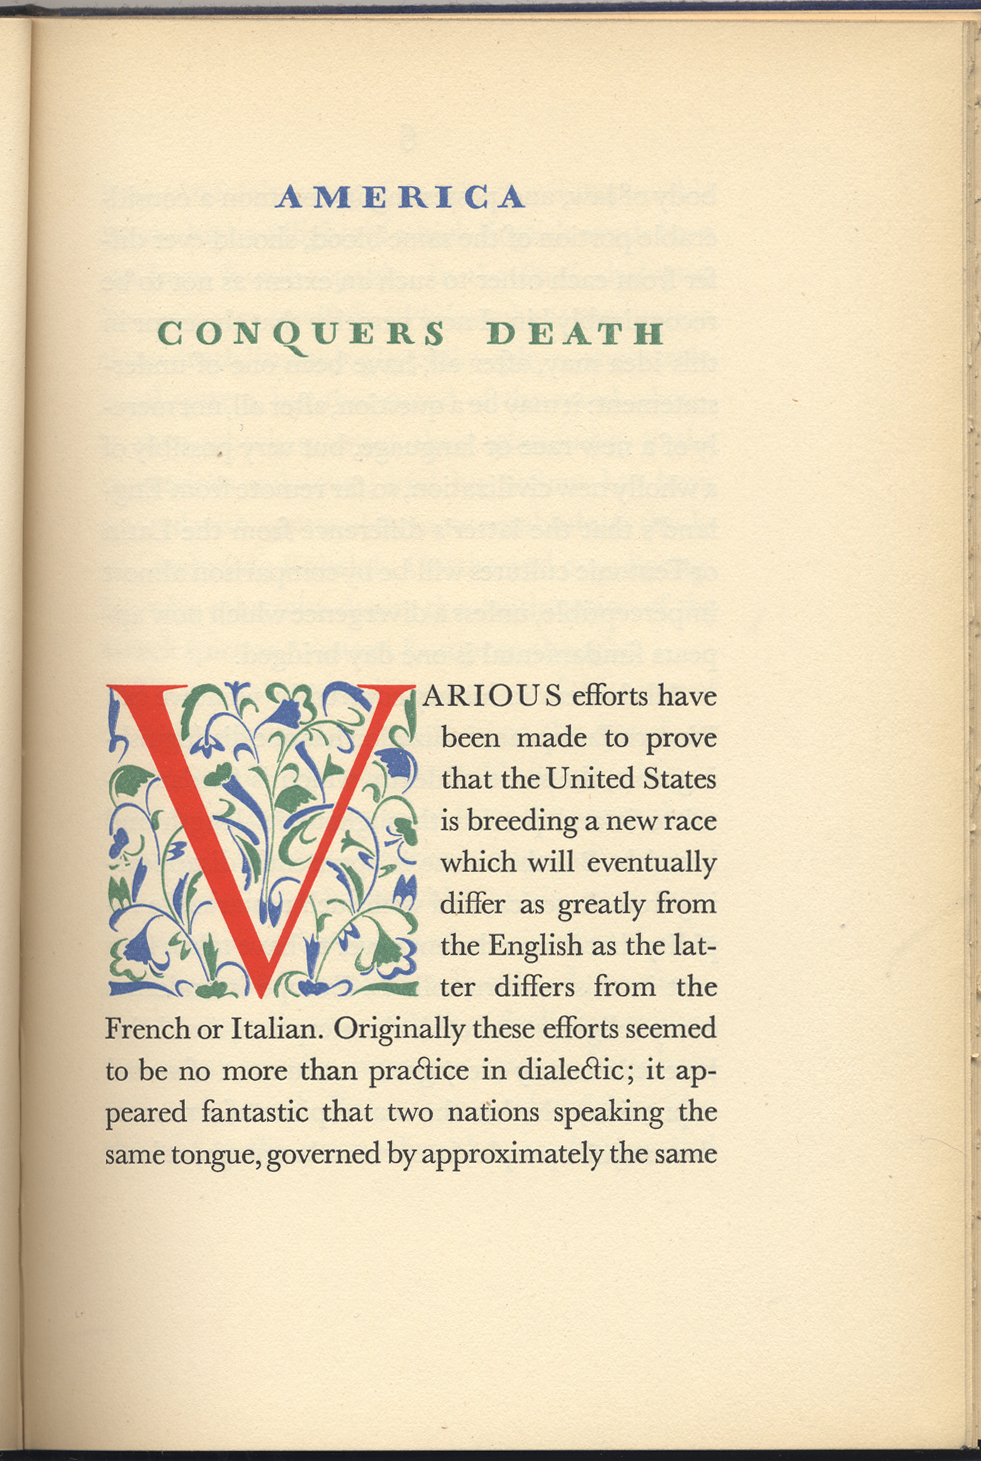 Opening page from America Conquers Death by Milton Waldman (Mount Vernon, New York: William E. Rudge & Son, 1928). Initial, lettering and typography by W.A. Dwiggins.